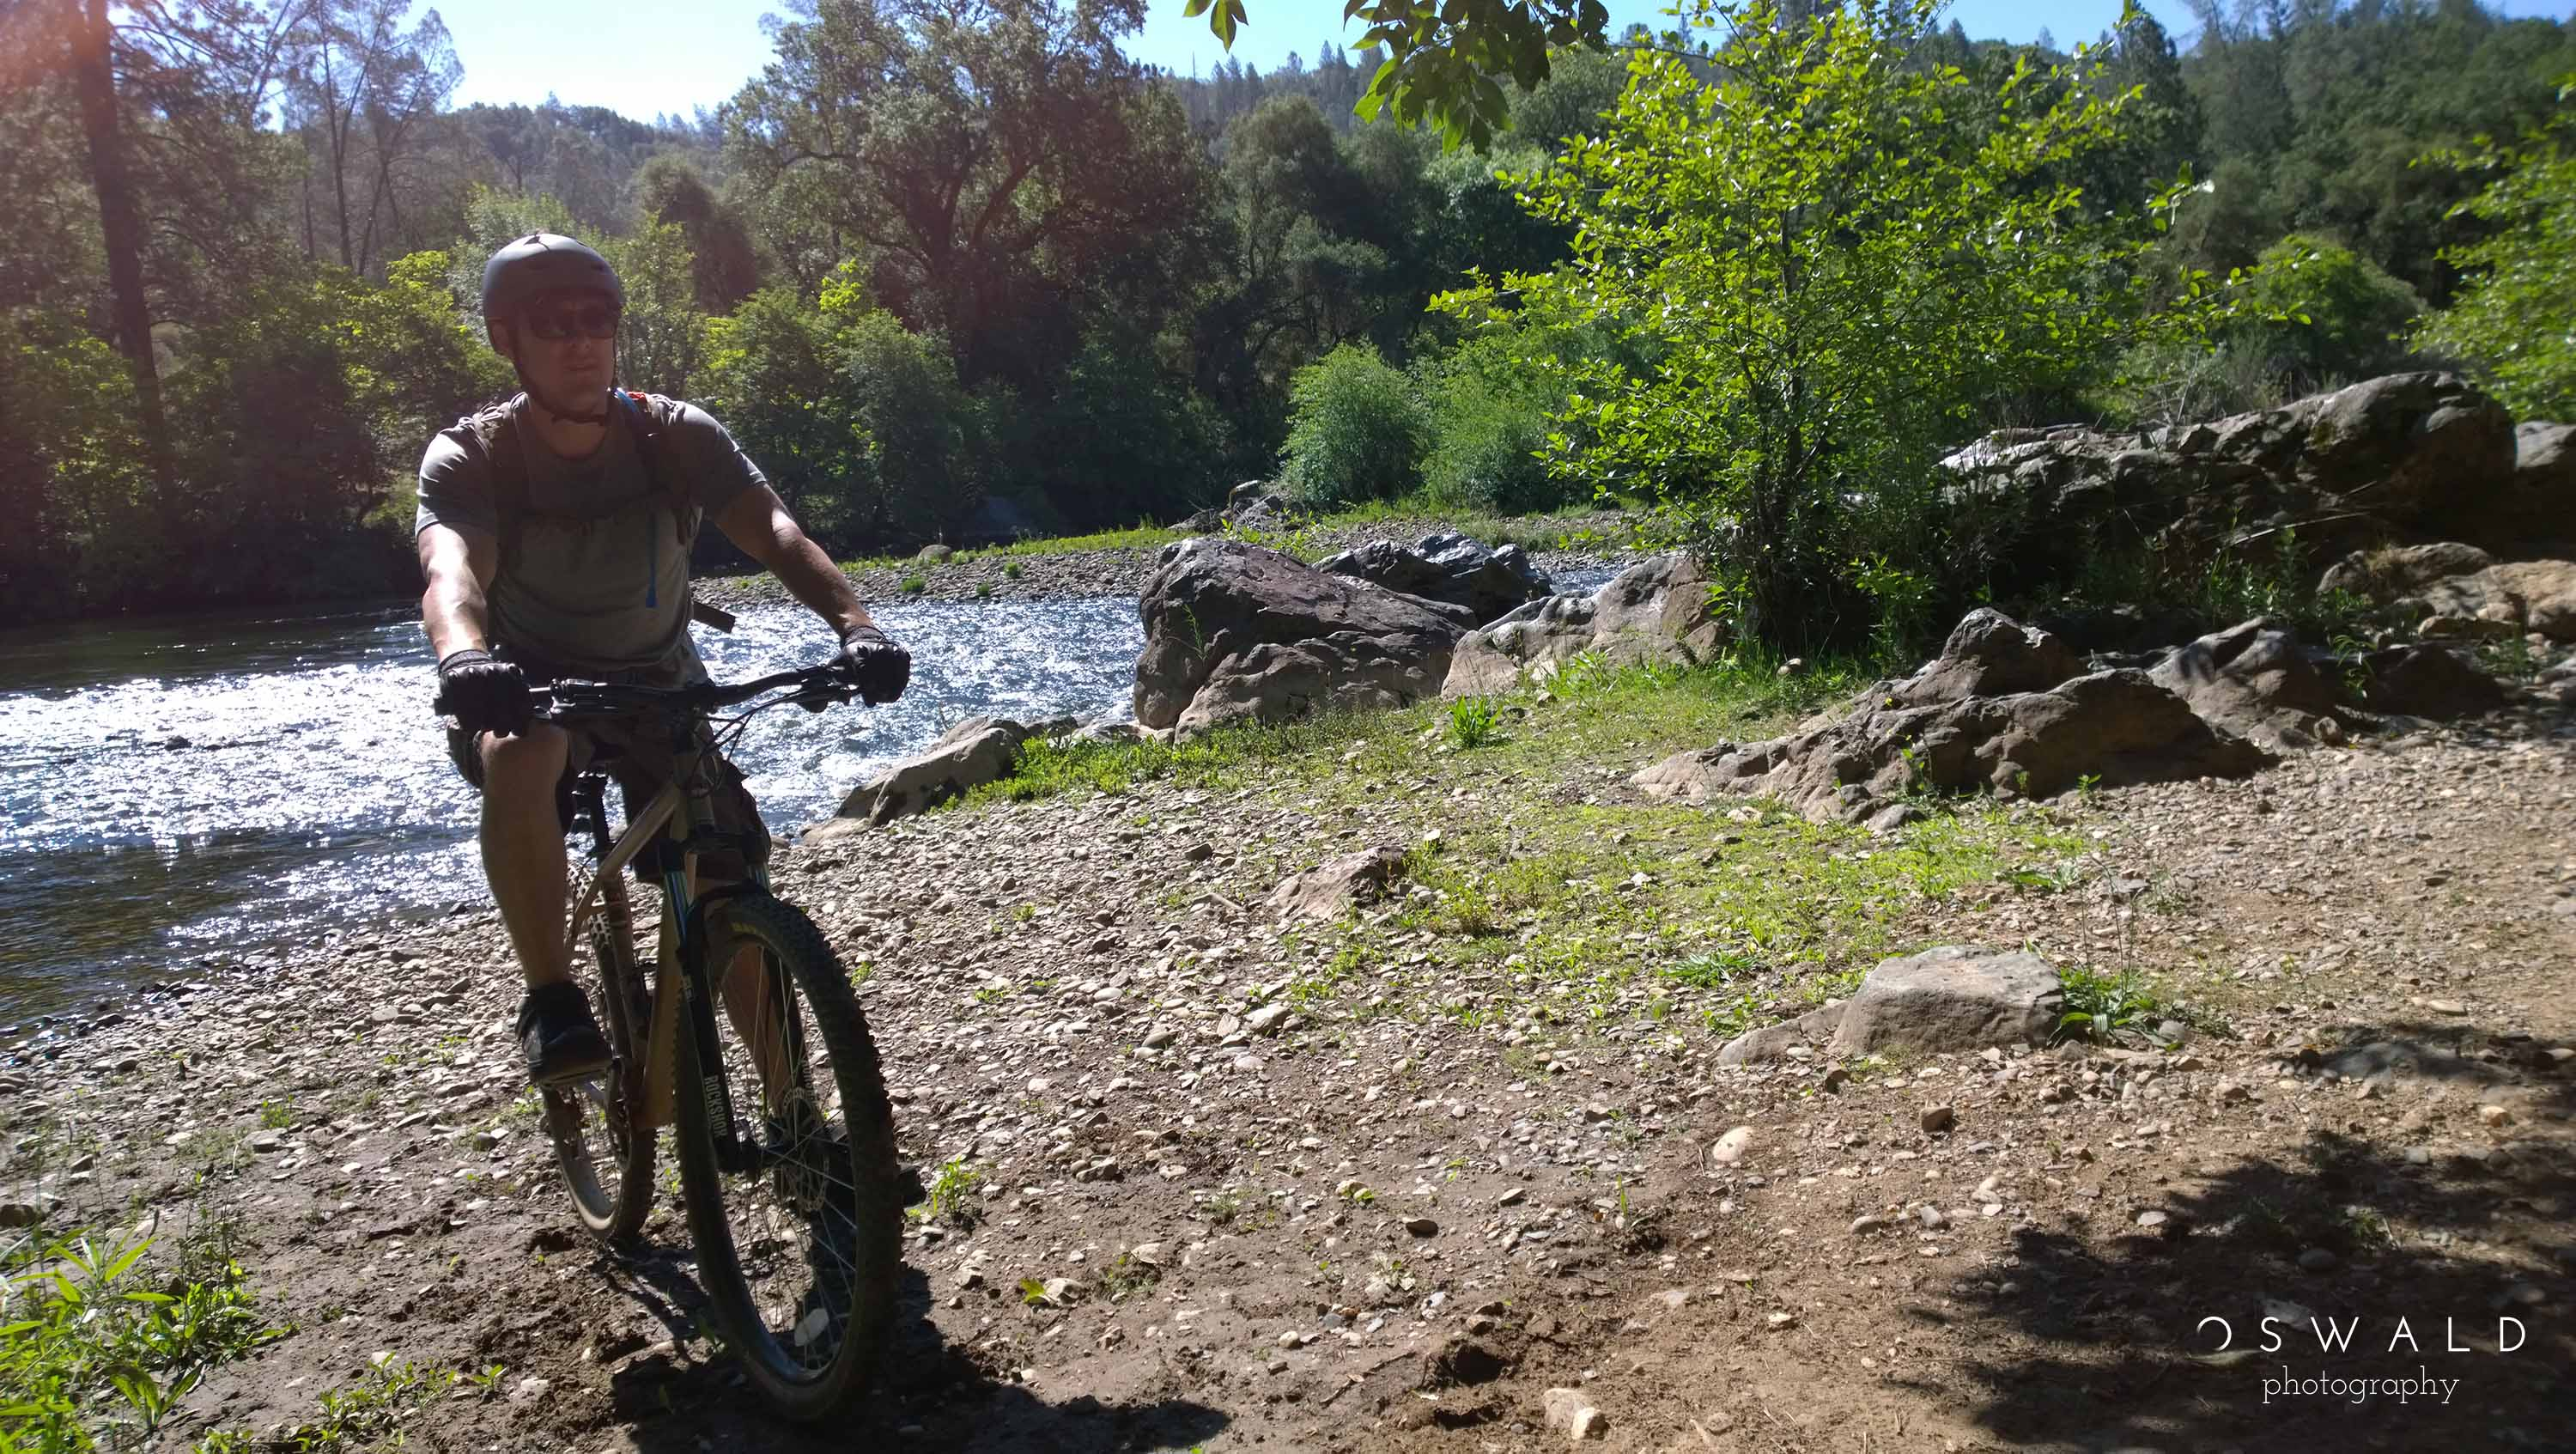 Photograph of a mountain biker riding along the shores of the South Fork of the American River.